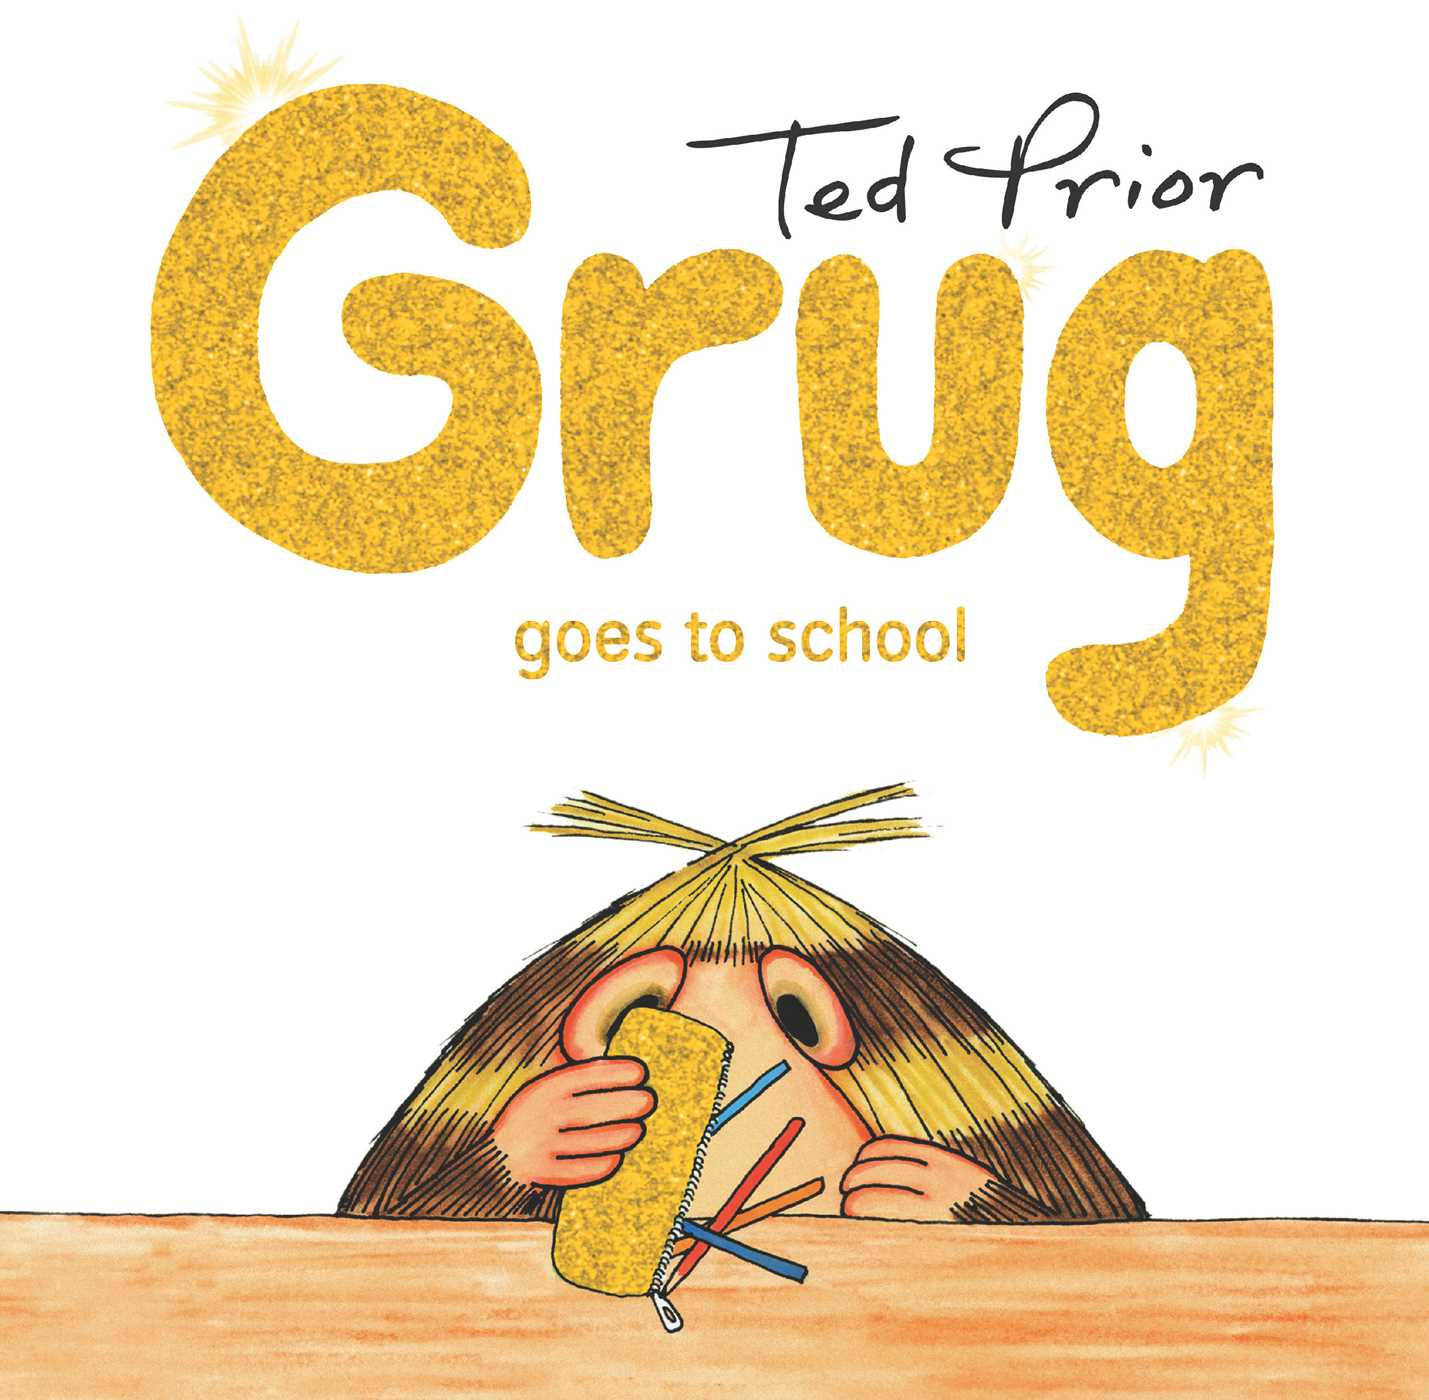 Grug goes to school 9780731815517 hr